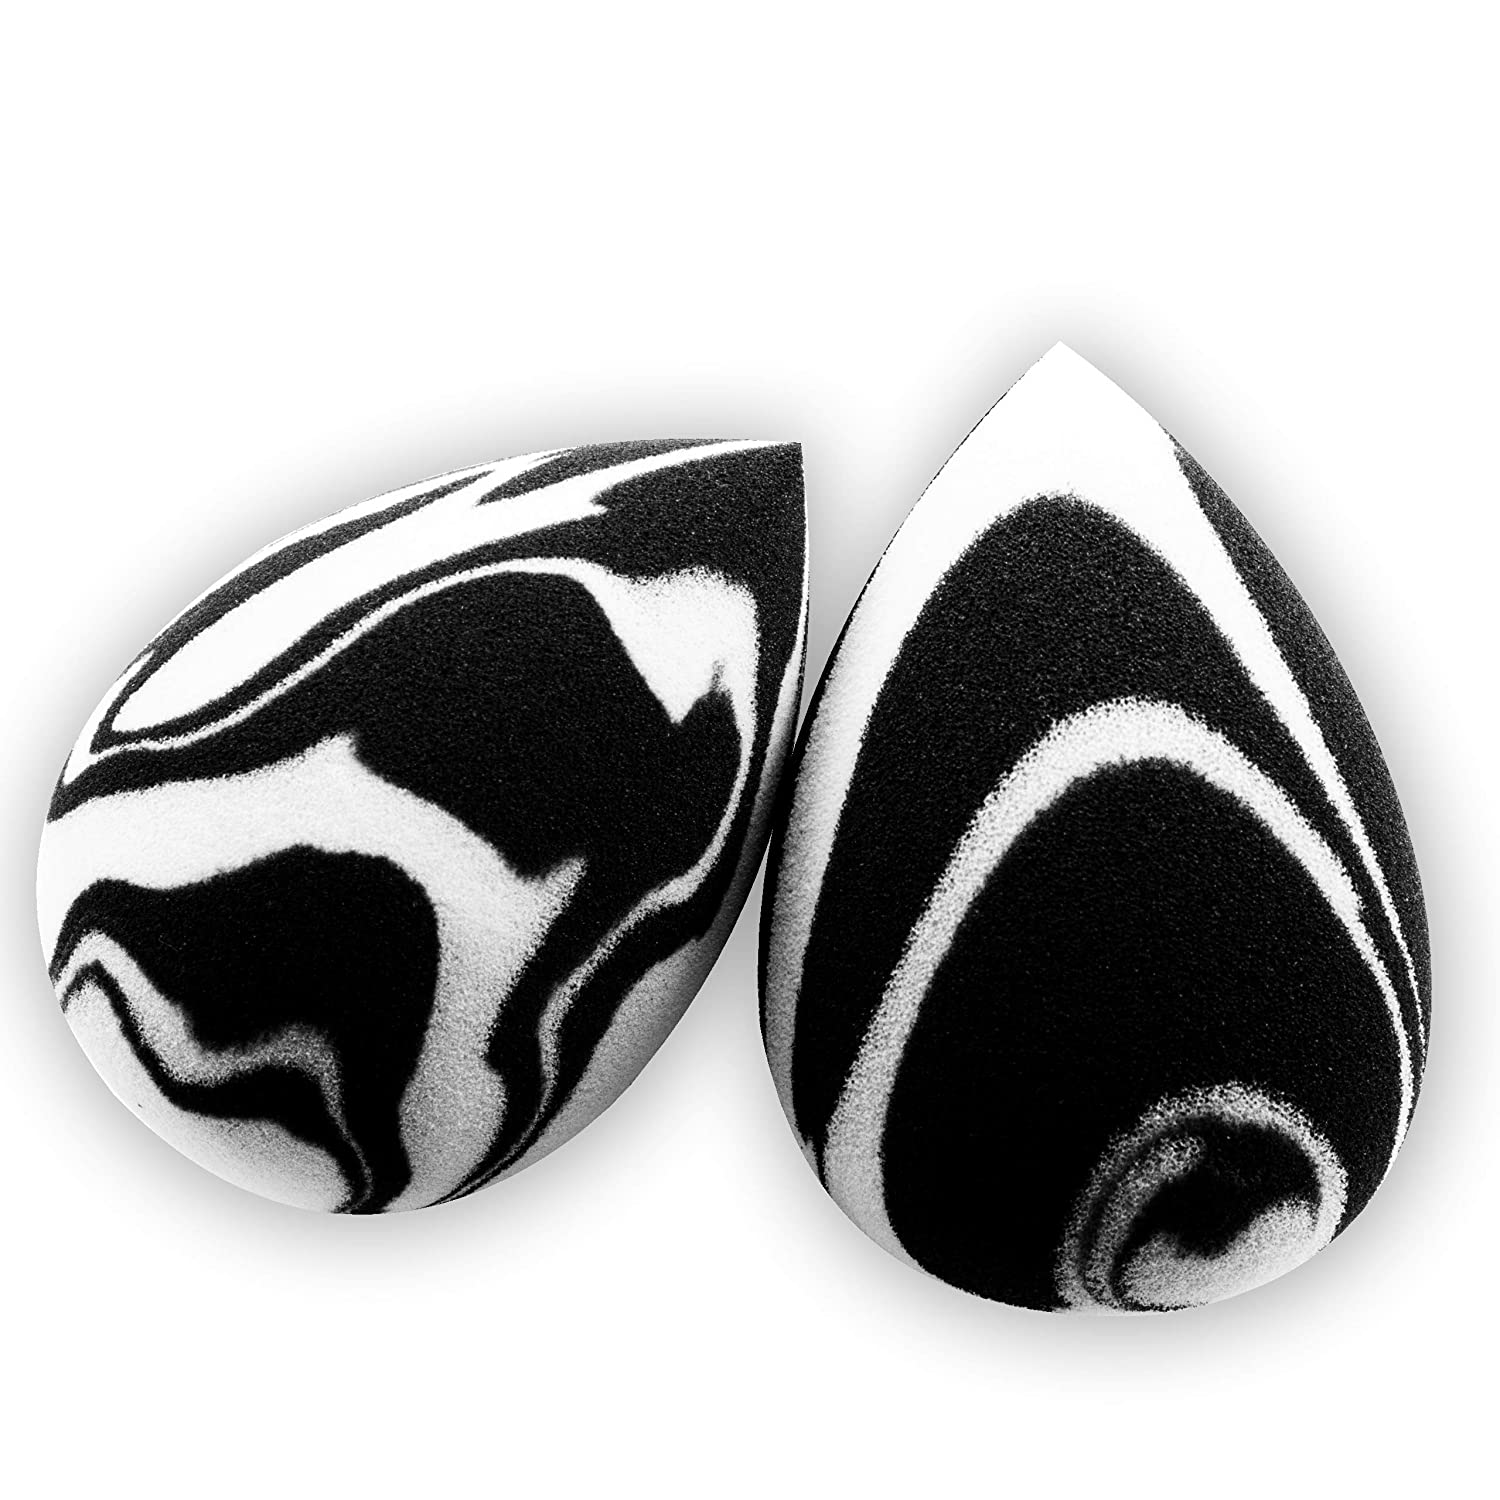 Premium Quality Black and White Marble Beauty Sponges, Makeup Blenders, 2-pack, Non-Latex